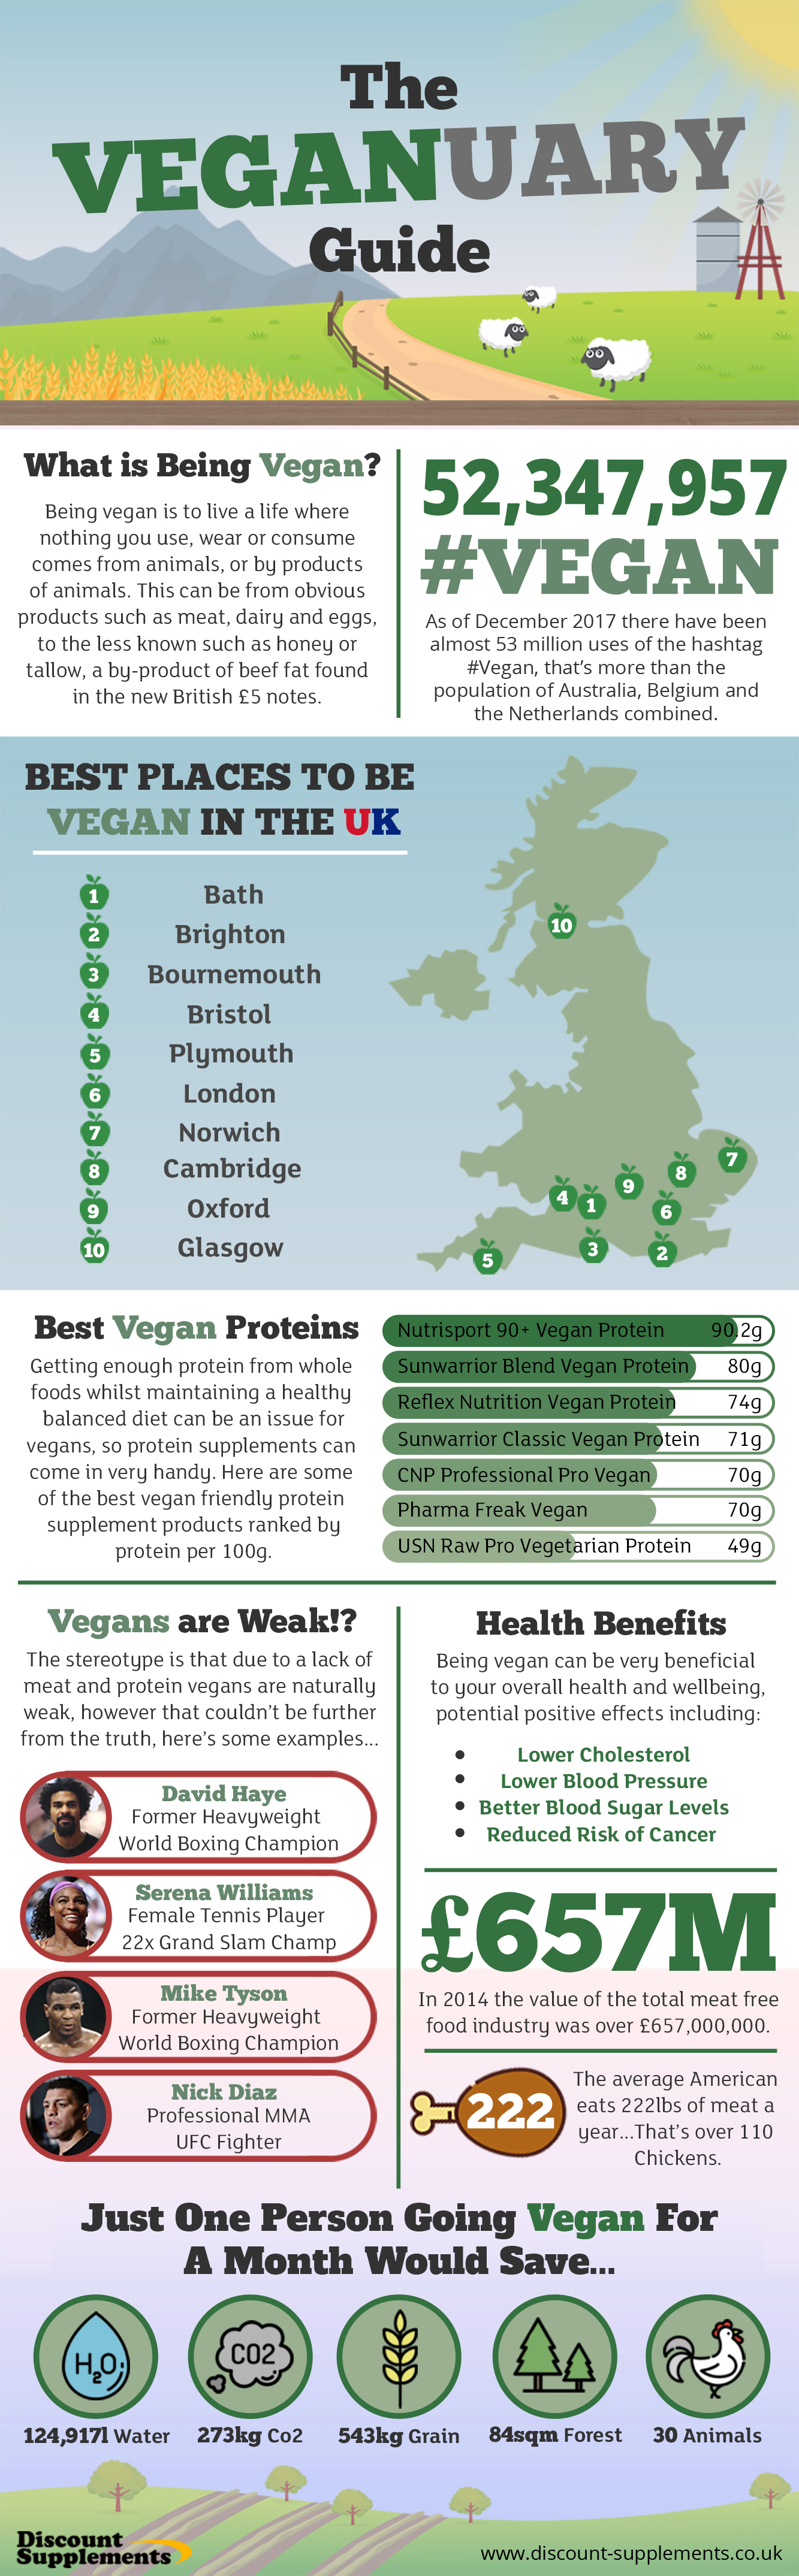 Veganuary Infographic The Veganuary Guide   Infographic